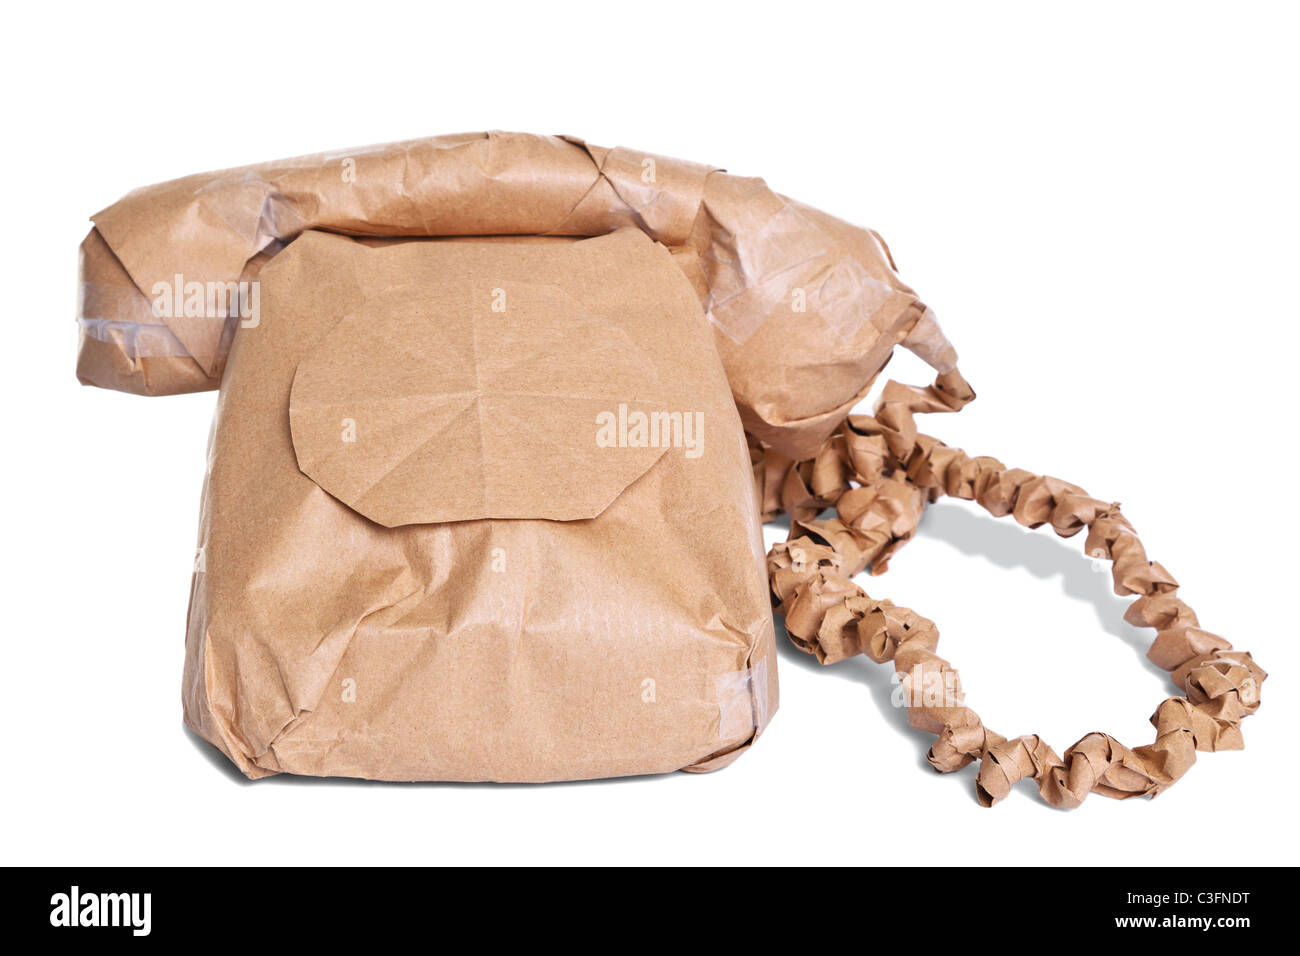 Photo of a telephone wrapped in brown recycled paper, cut out on a white background. - Stock Image